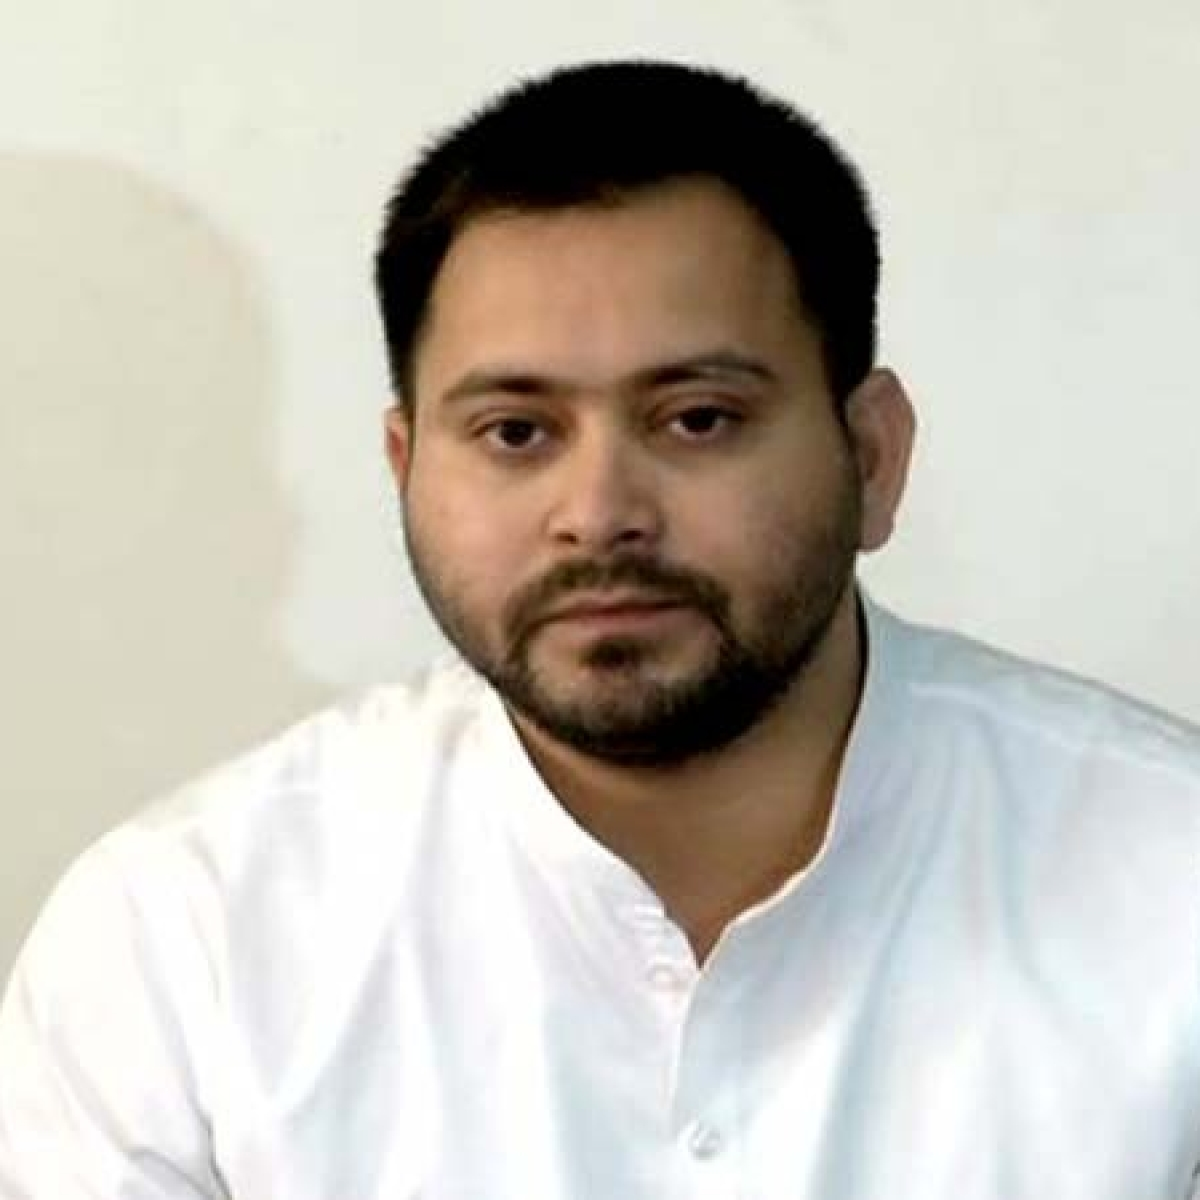 Tejashwi Prasad Yadav apologies for 'mistakes and lapses' during Lalu's rule in Bihar